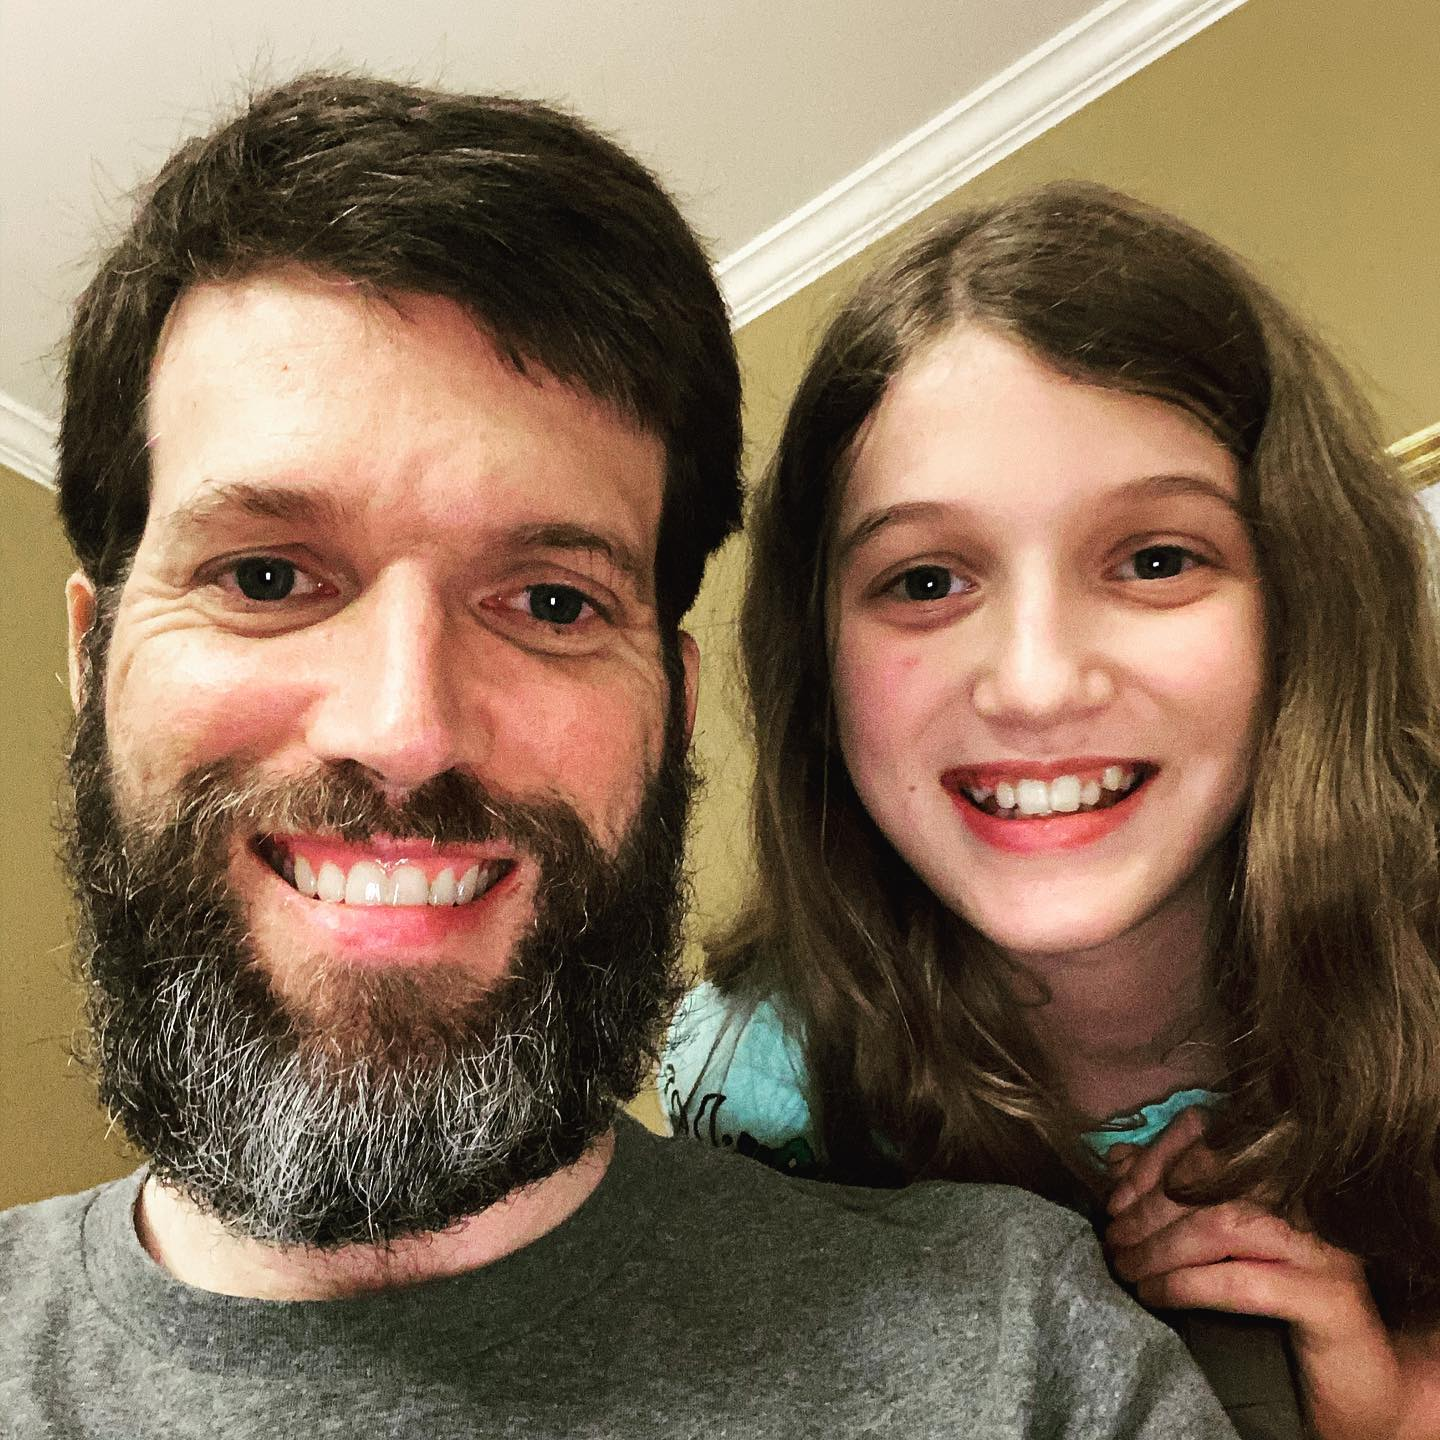 Self Quarantine Beard Update - Day 90 ... got a haircut yesterday but the beard is still going strong. Sara wants me to make it to day 100 before I trim it. Gonna give it a shot. #family #beard